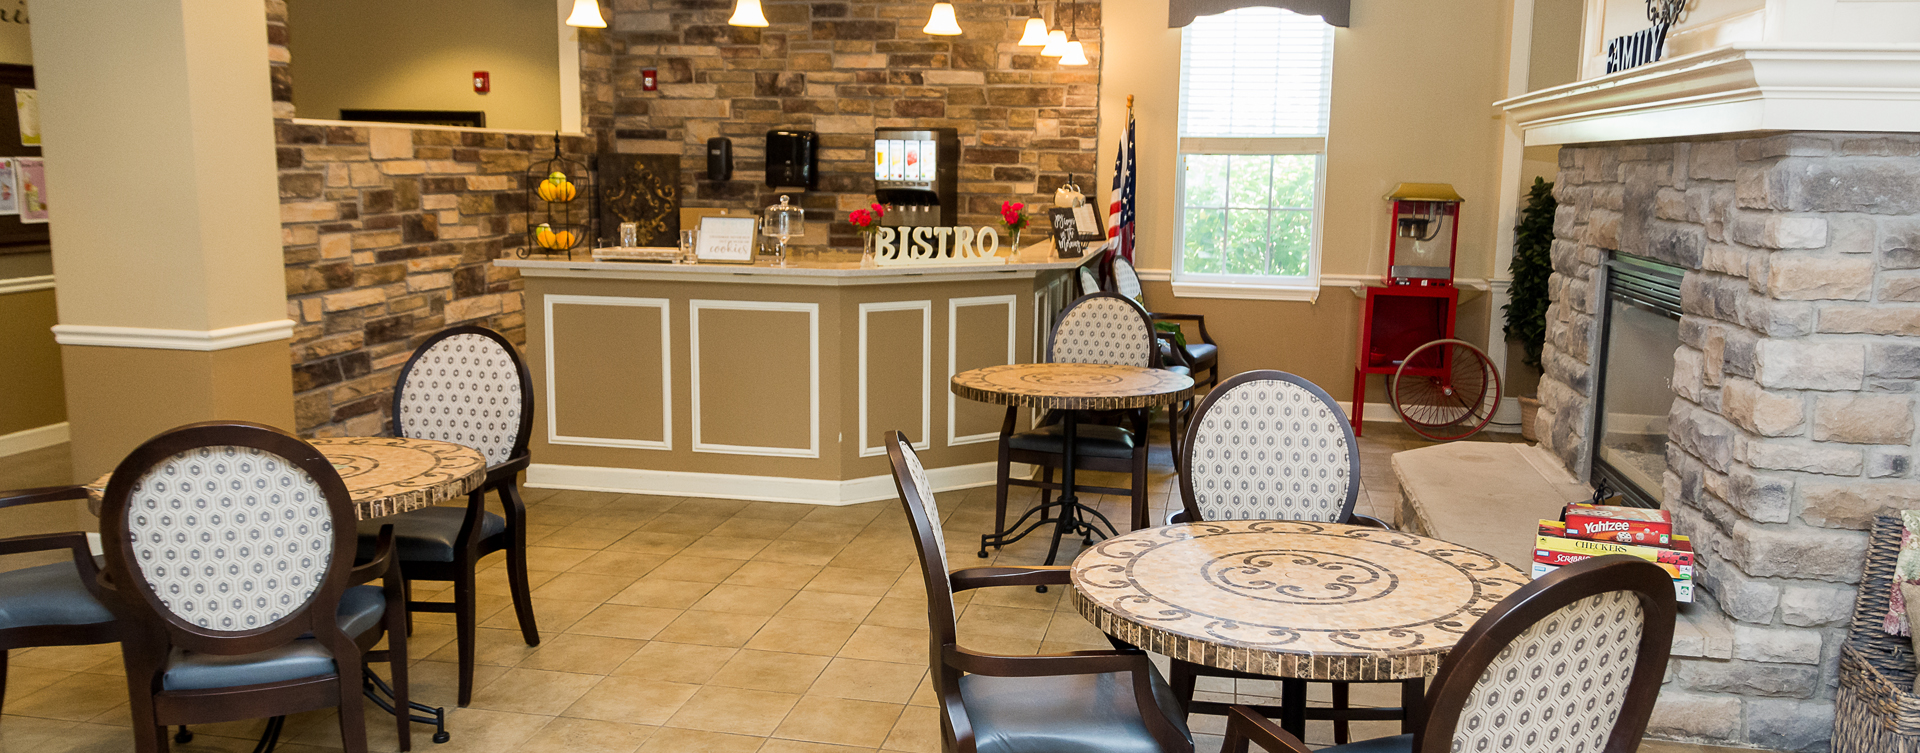 We're serving up snacks, beverages and service around the clock in the bistro at Bickford of Oswego